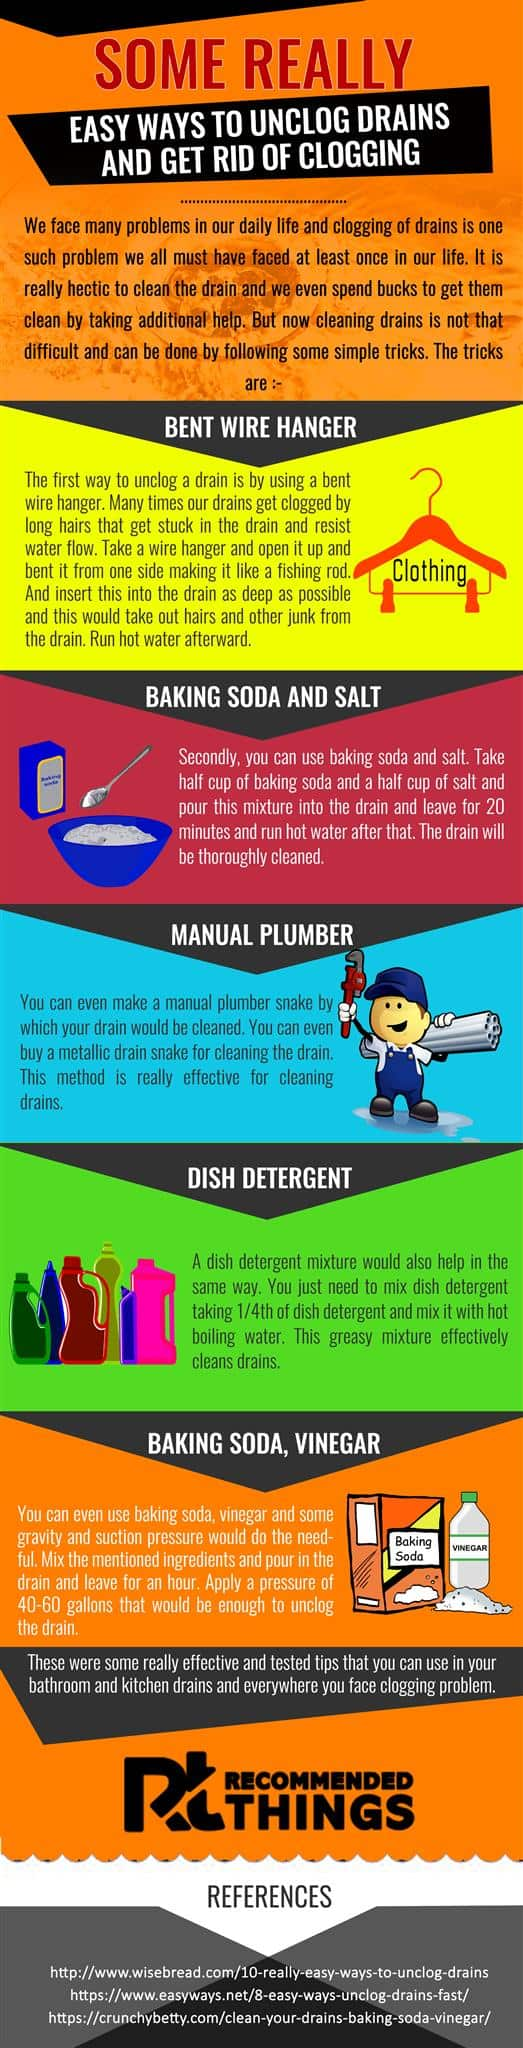 Easy Ways To Unclog Drains